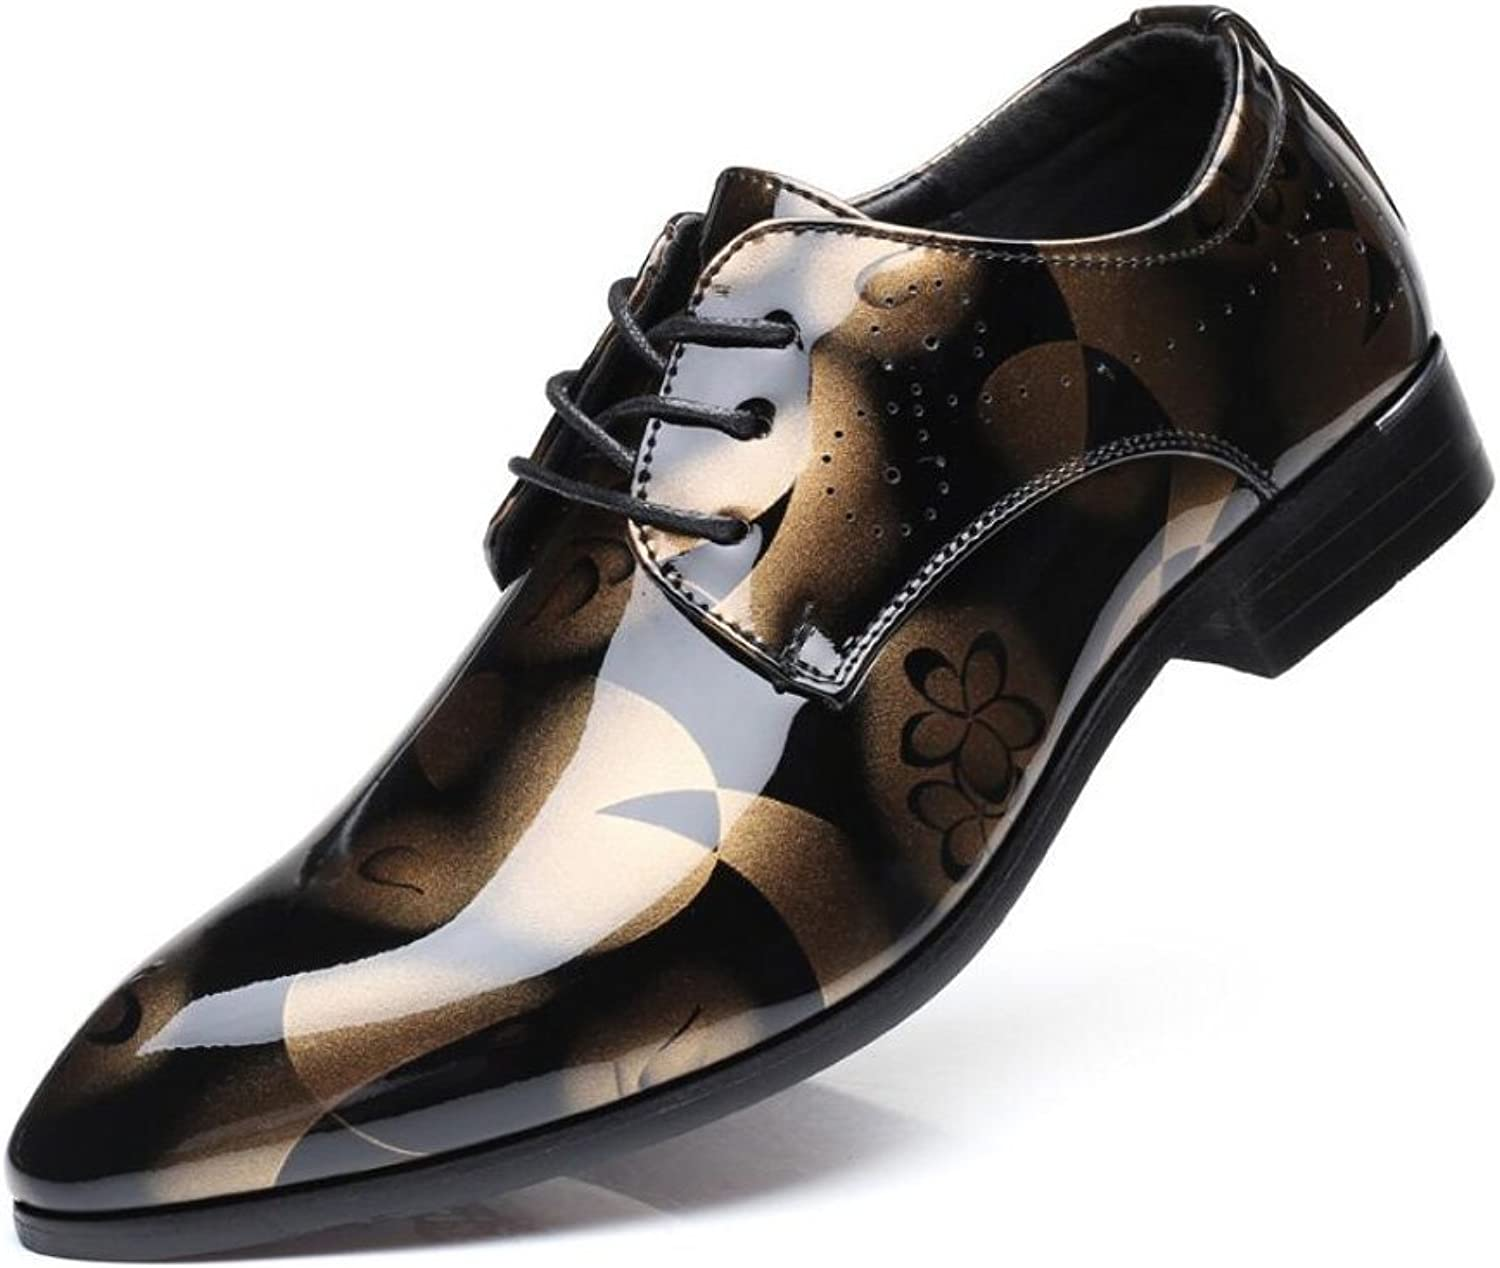 Men's shoes, Leather Business shoes,Pointed Toe Dress shoes,Spring Fall Comfort Formal shoes Party & Evening Printed,C,41